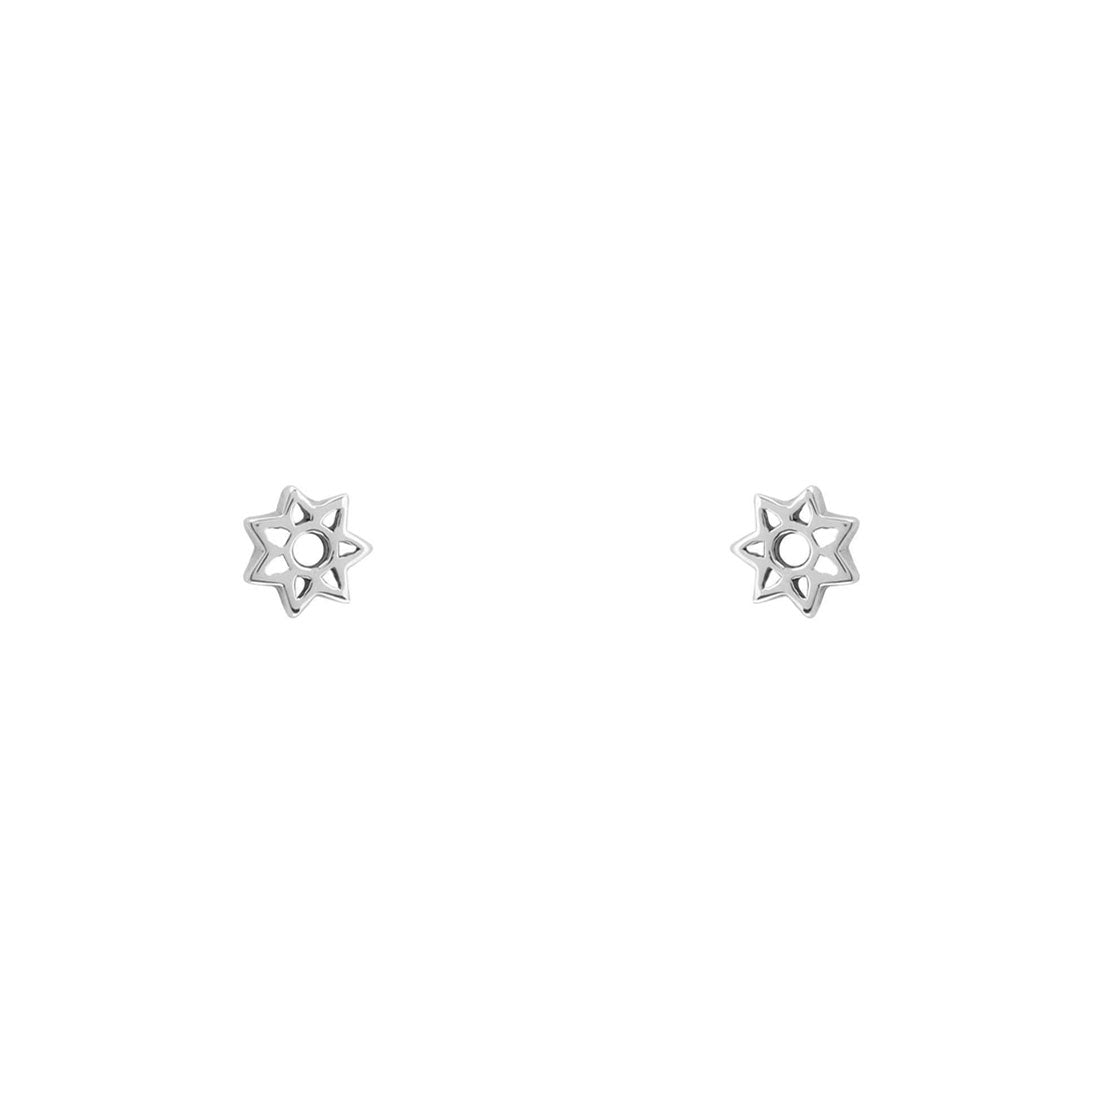 Midsummer Star Earrings Celebration Studs